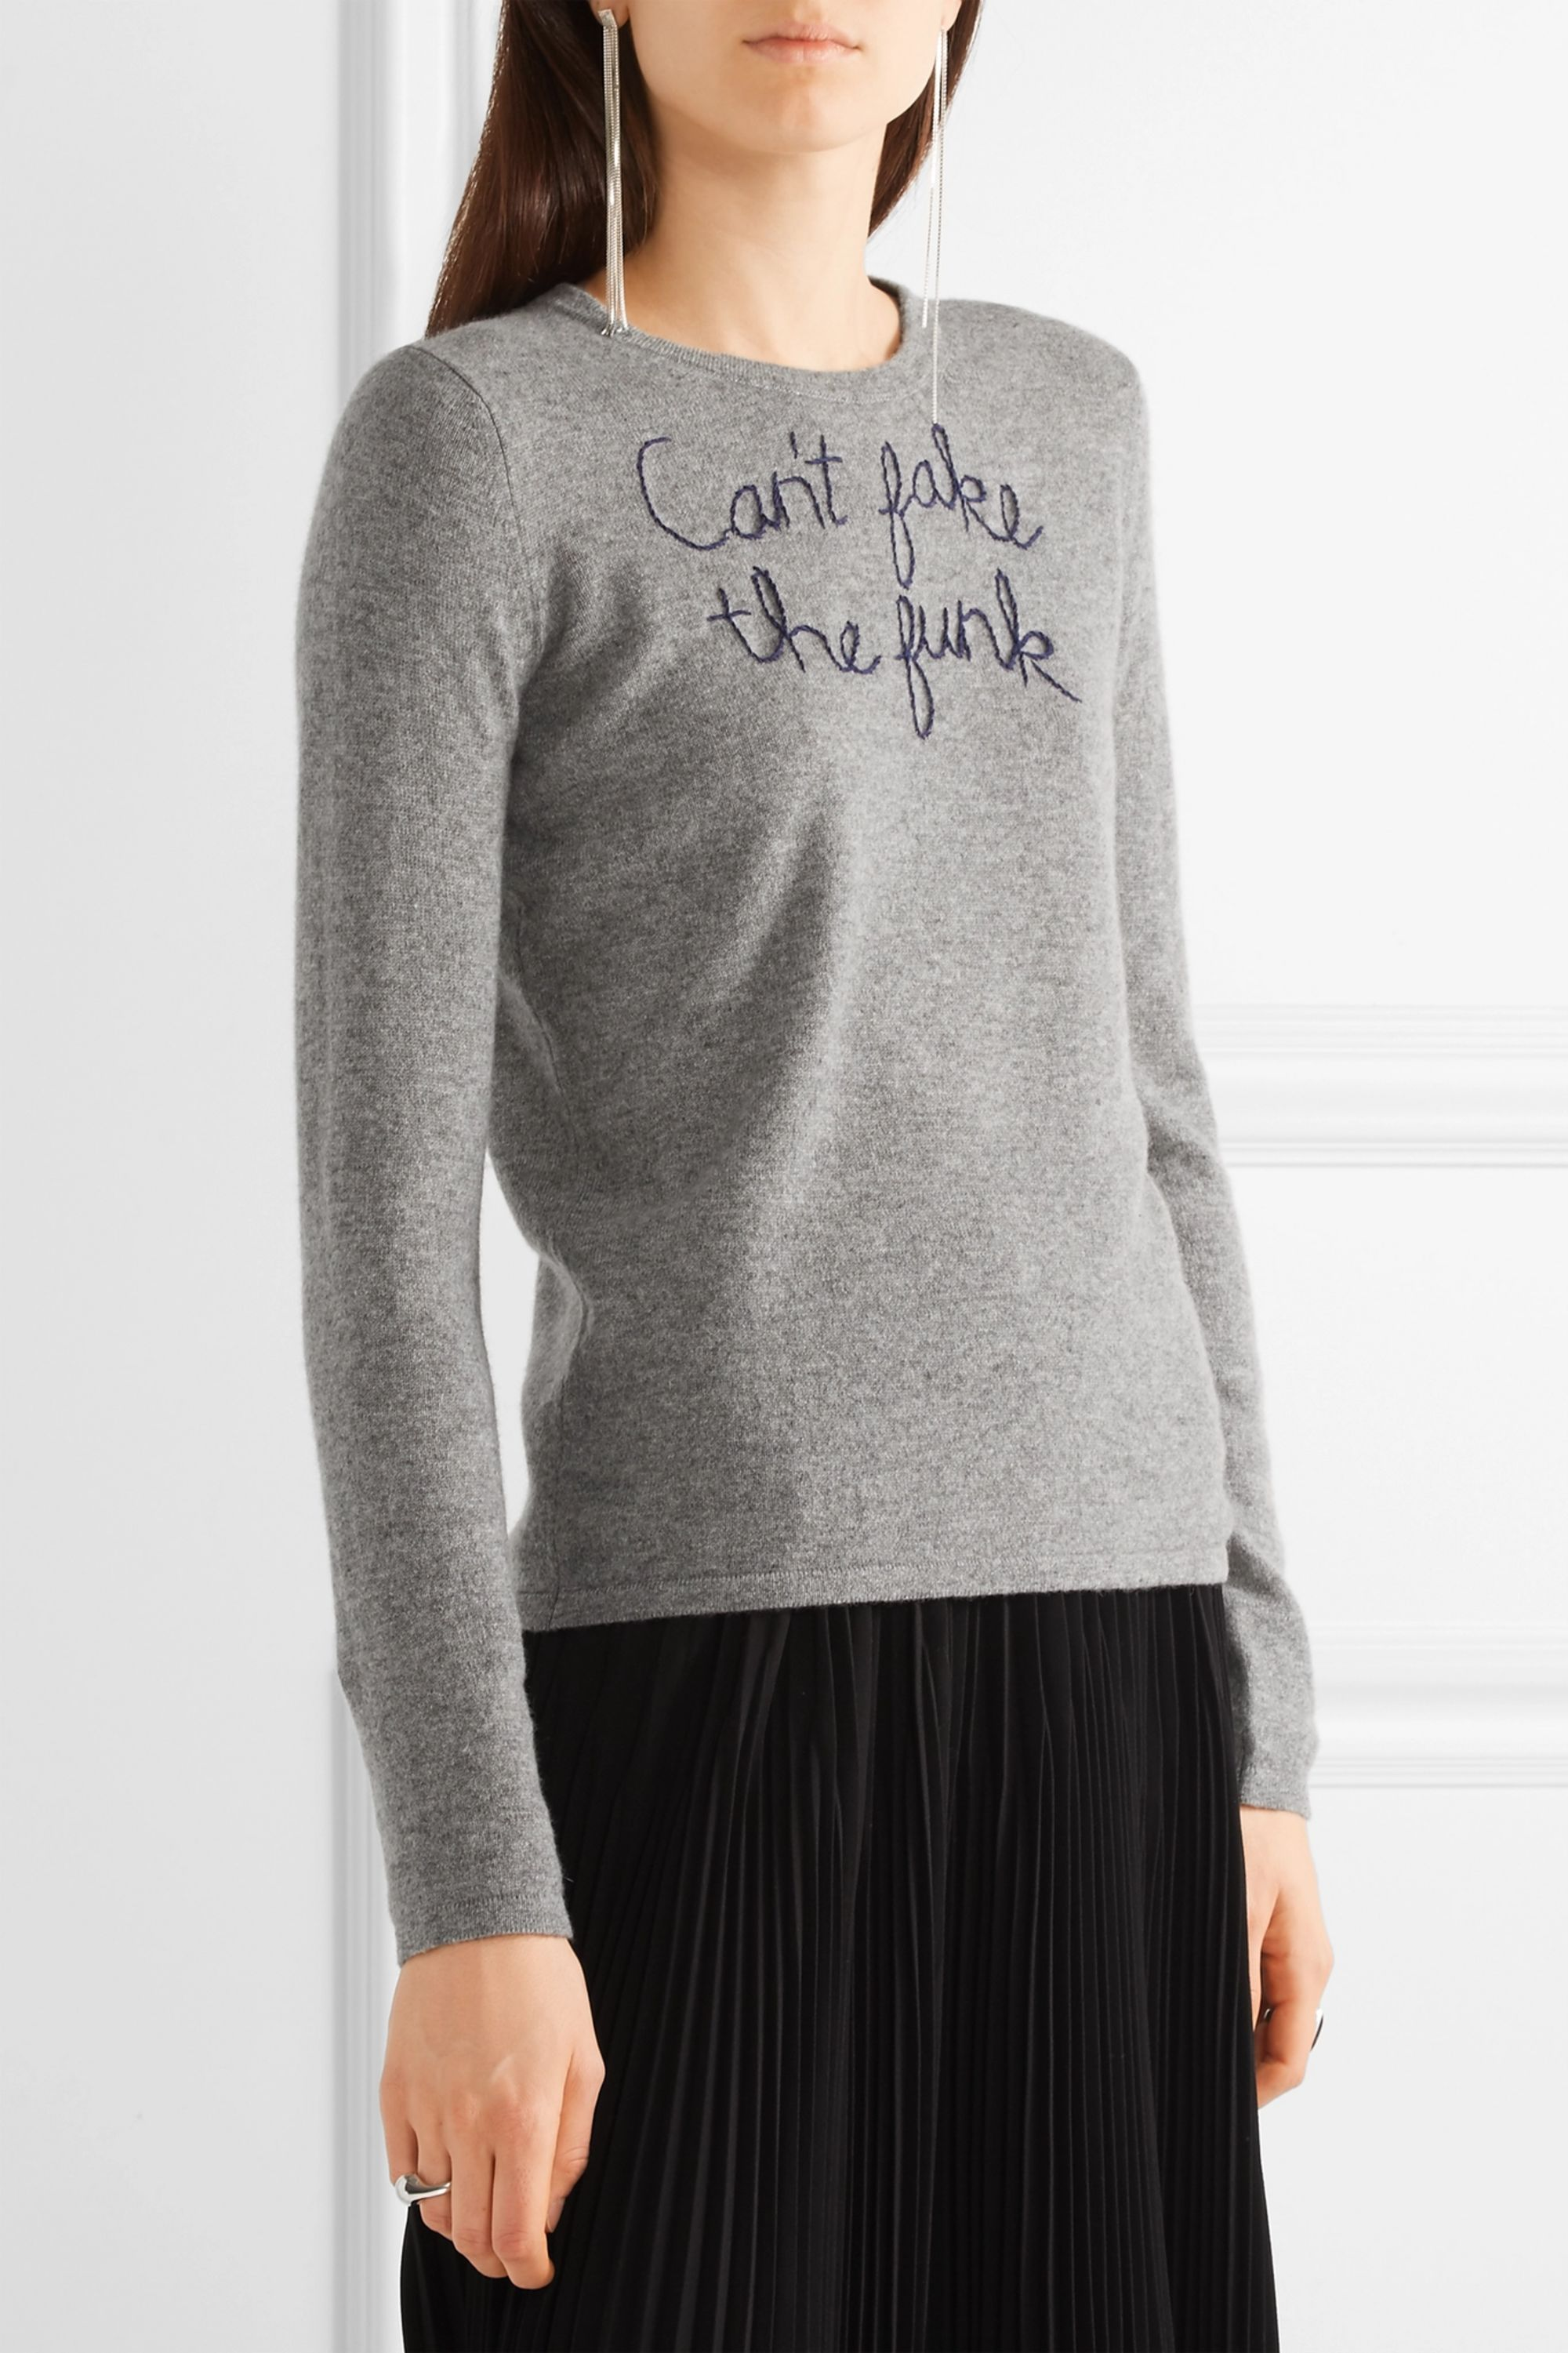 Lingua Franca Can't Fake The Funk embroidered cashmere sweater